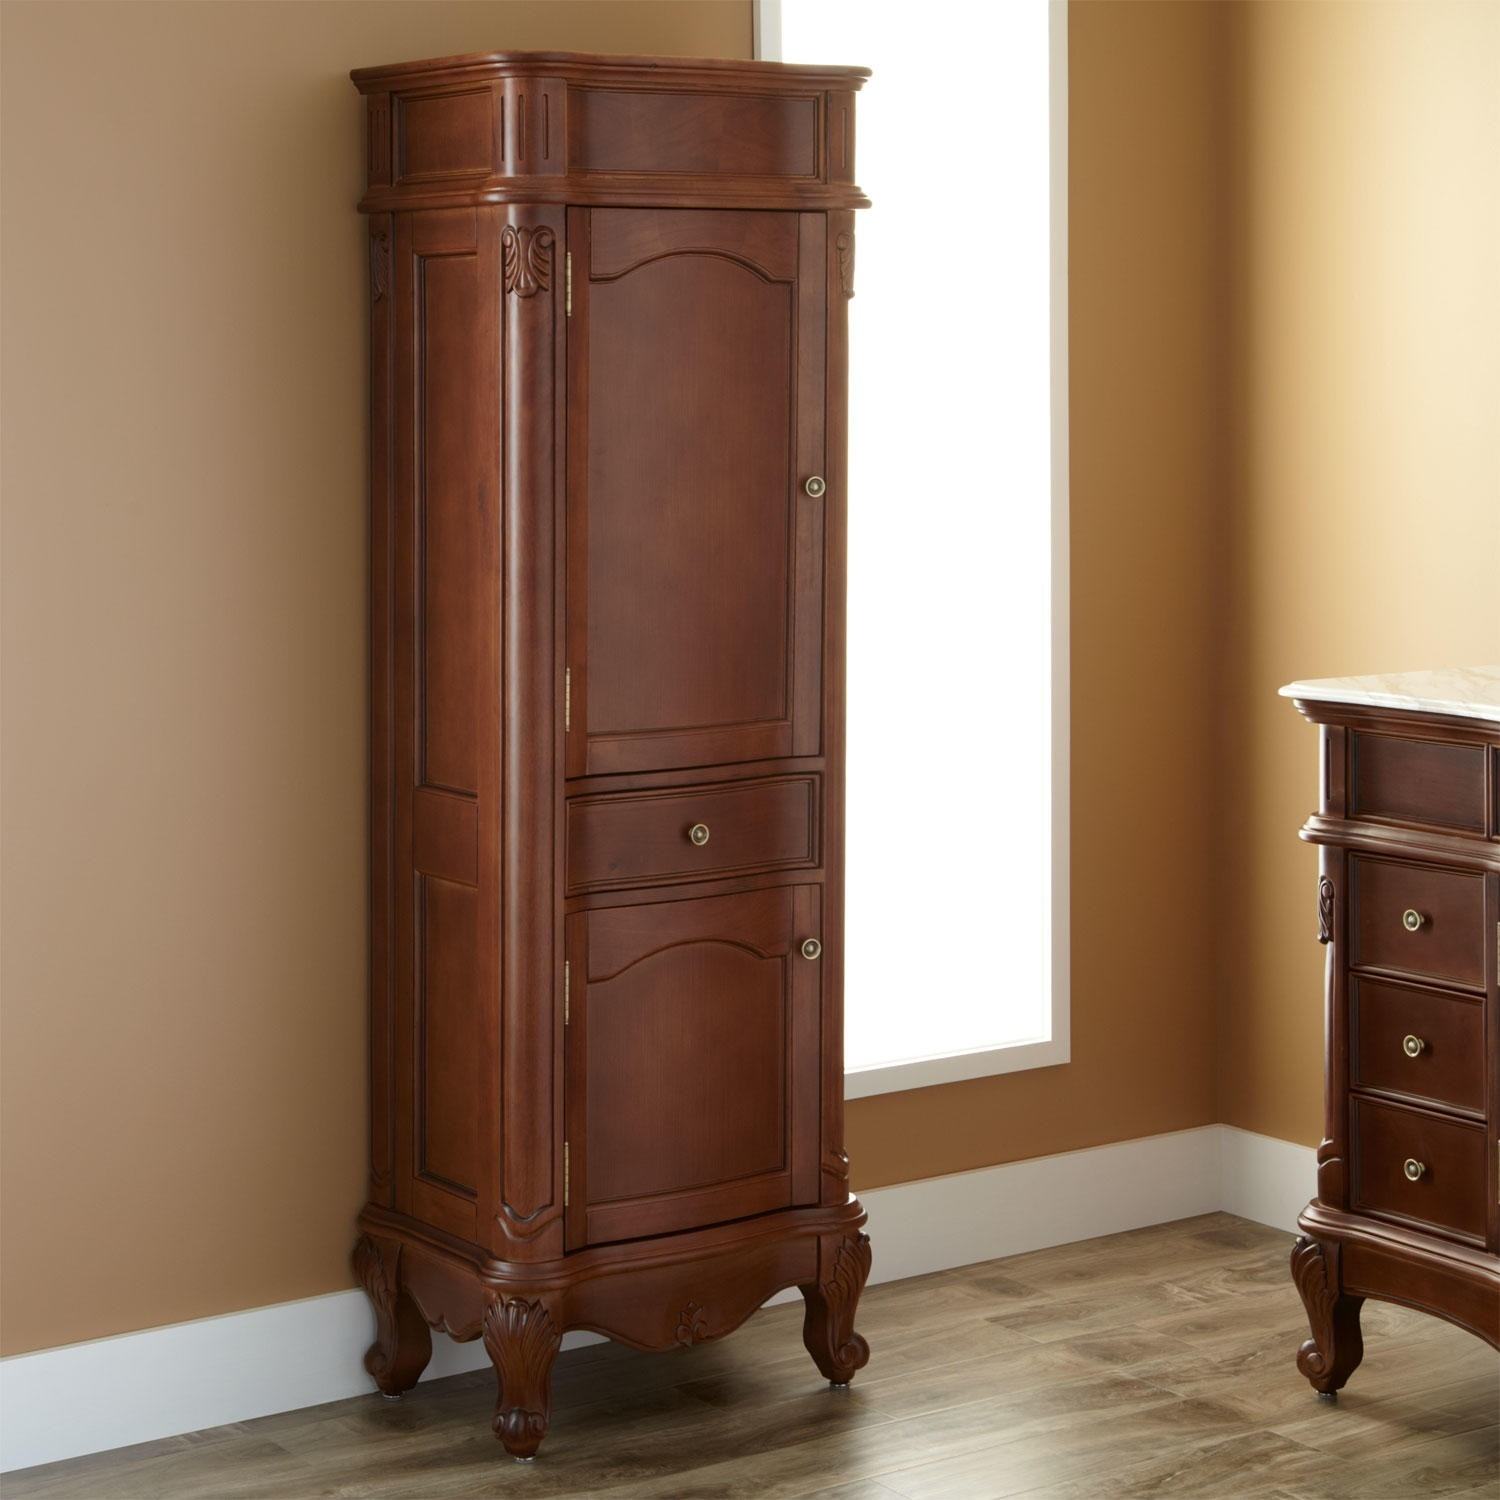 Dark Cherry Bathroom Storage Cabinet